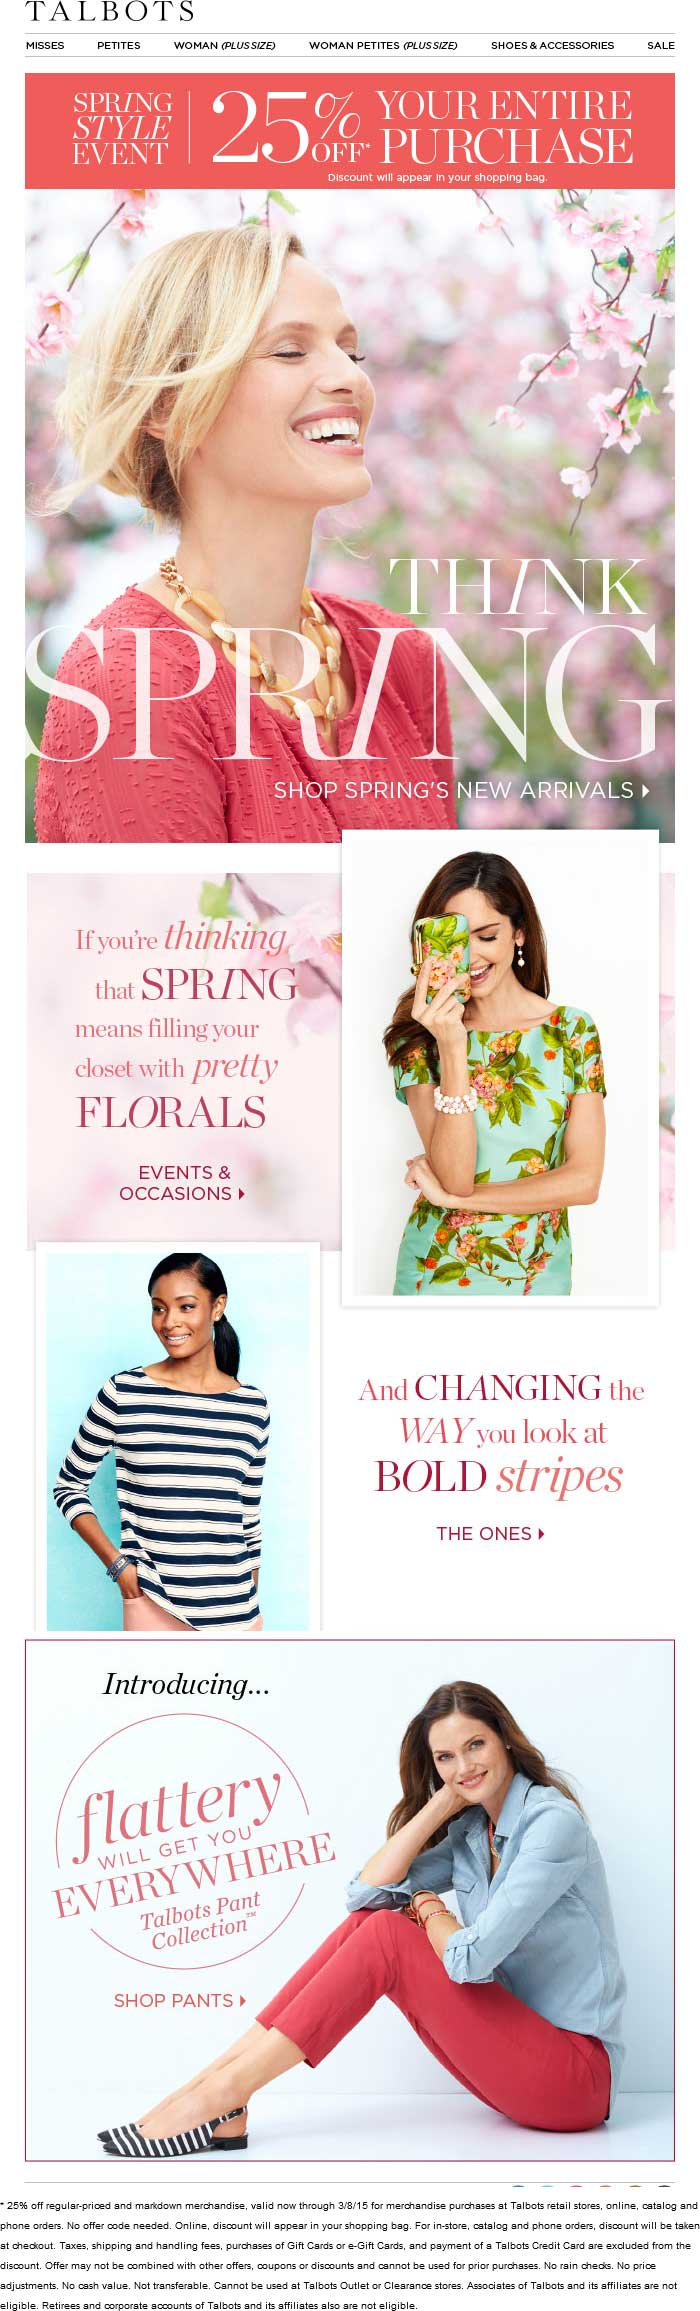 Talbots Coupon June 2017 Extra 25% off at Talbots, ditto online